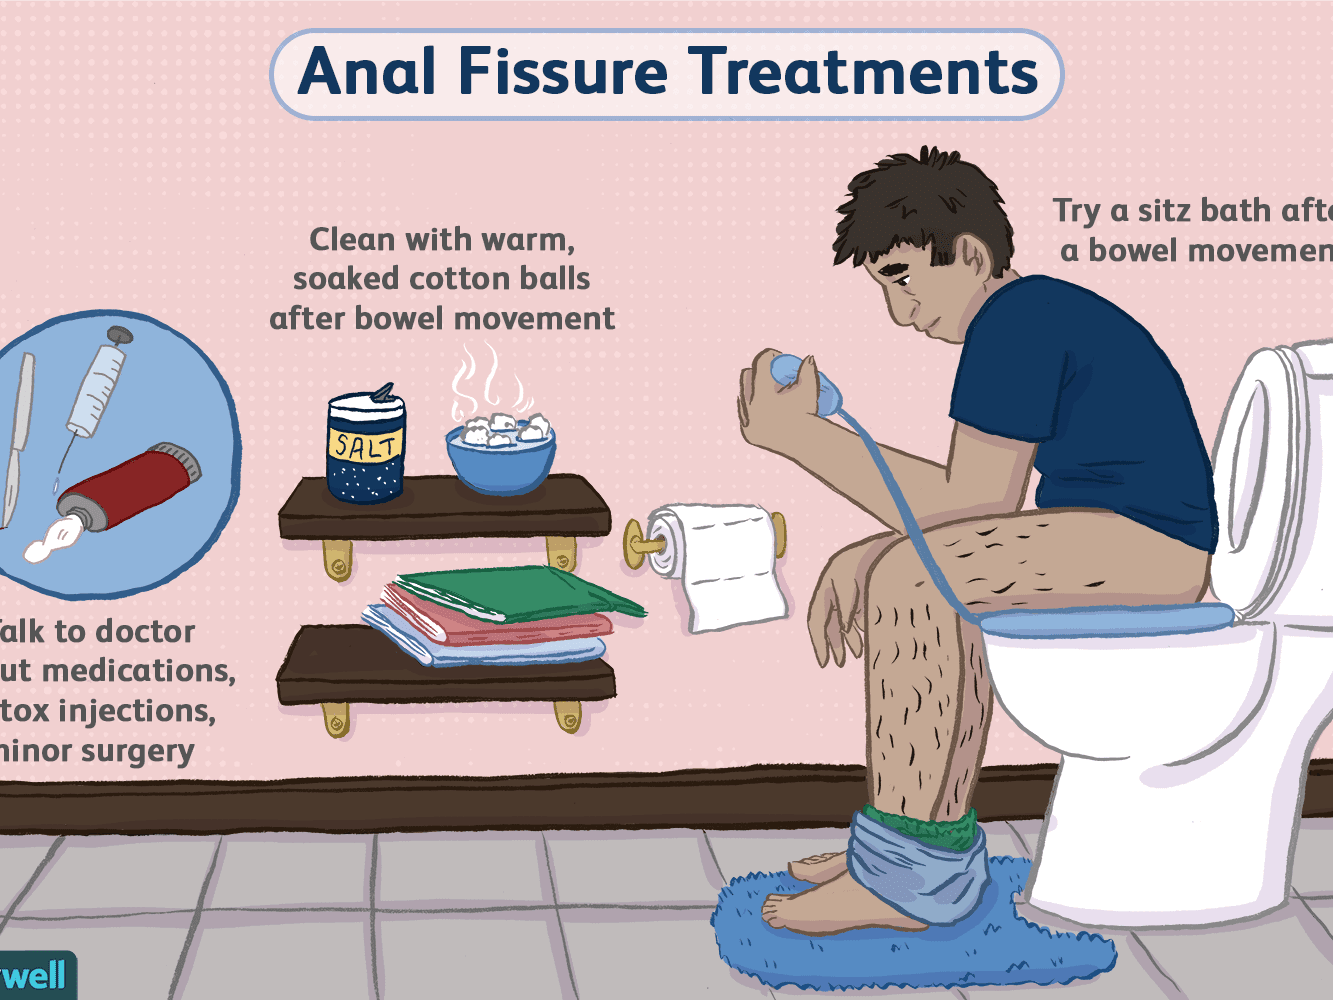 Anal fissure images